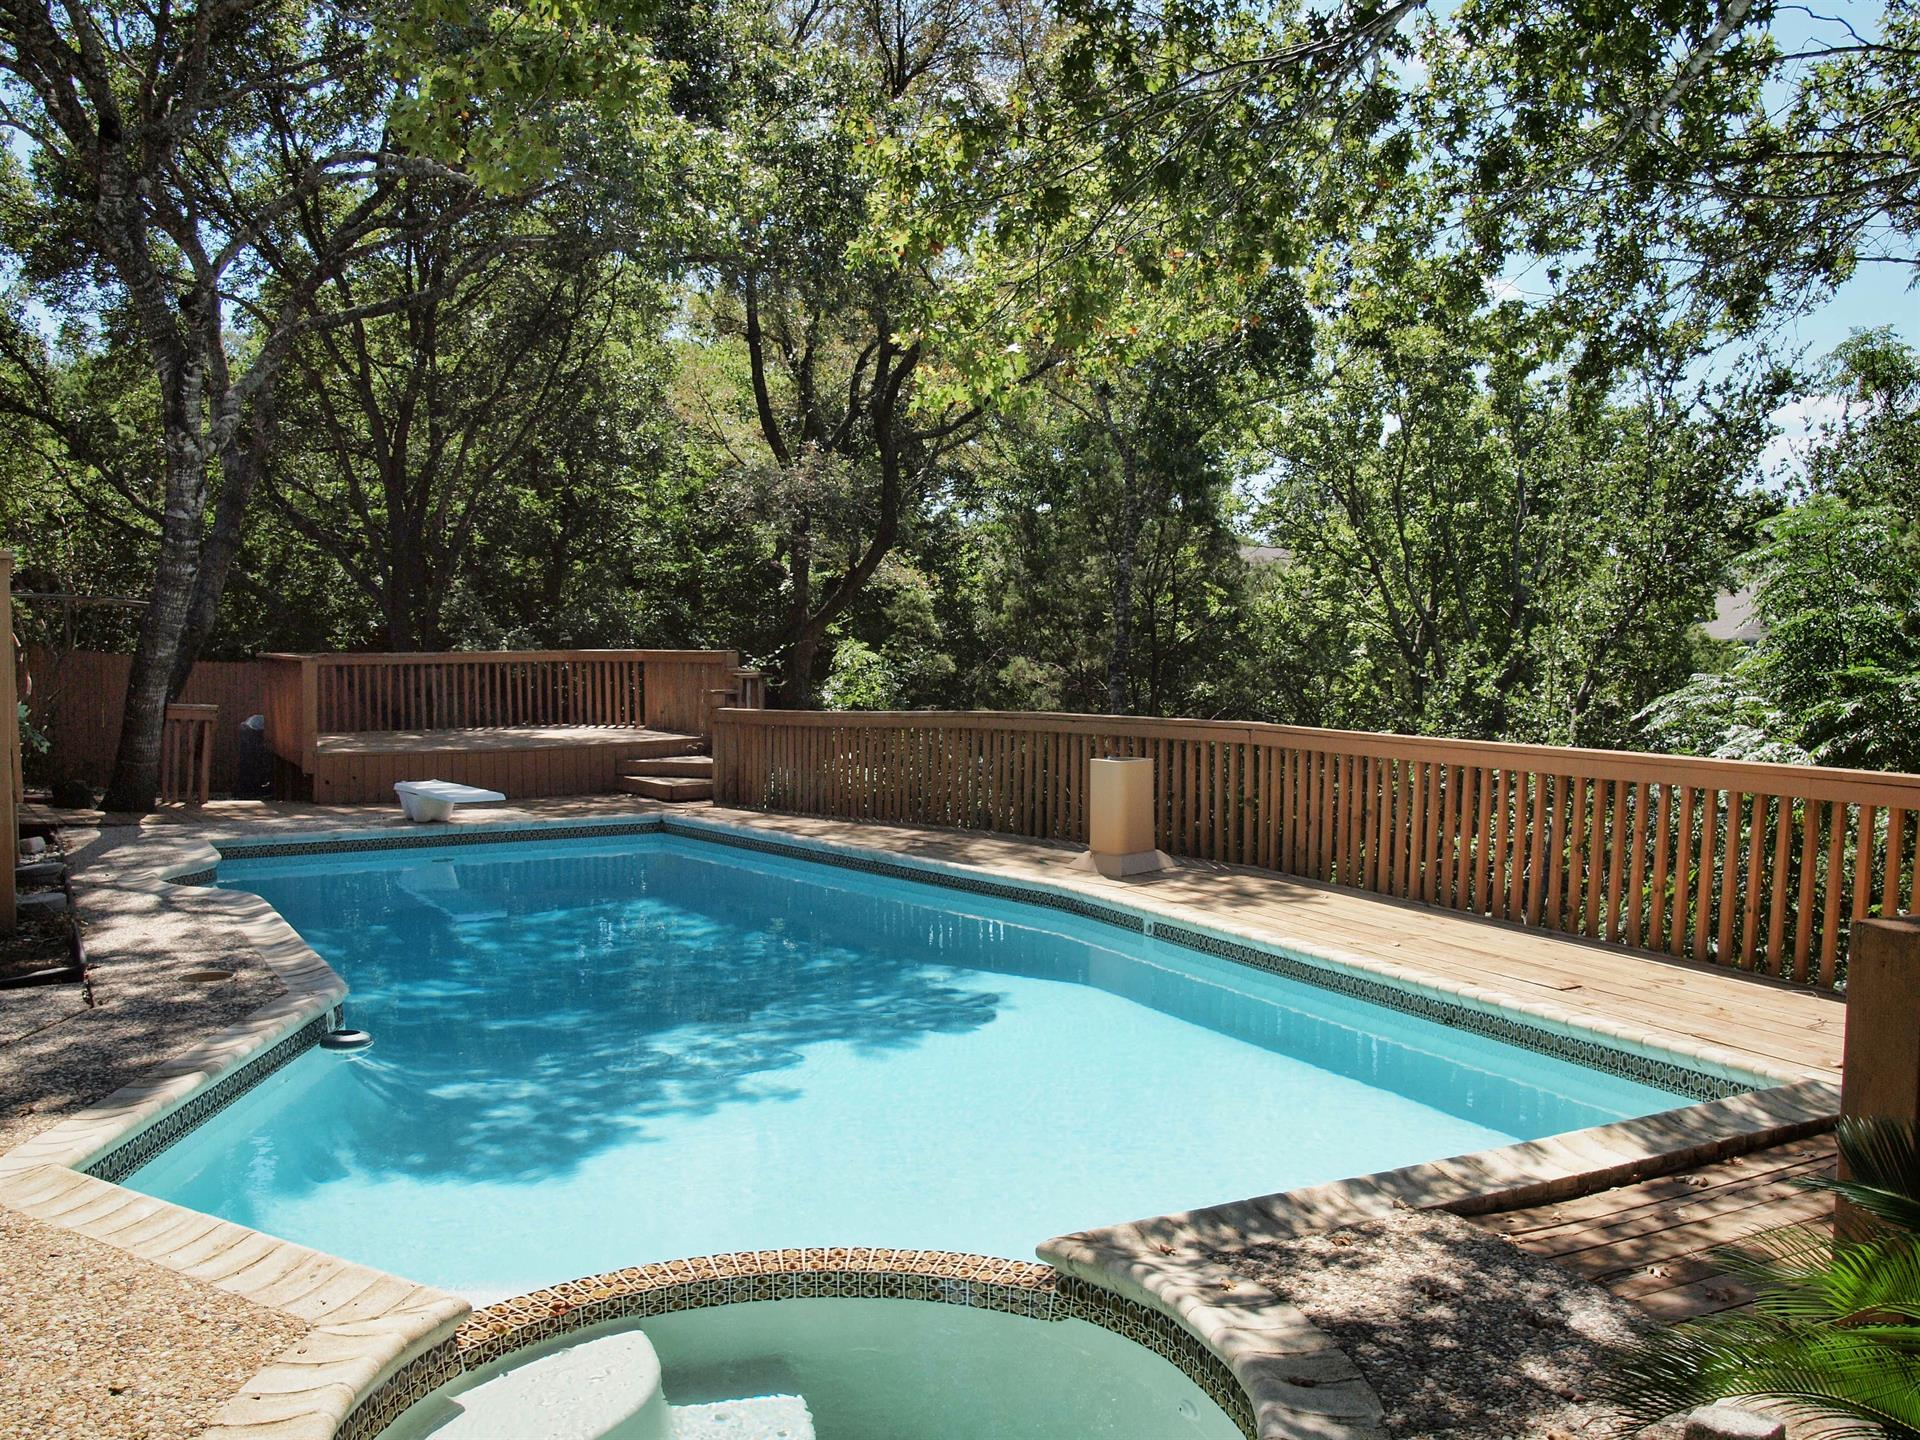 Additional photo for property listing at 5111 Saddleridge Cove 5111 Saddleridge Cove Austin, Texas 78759 United States